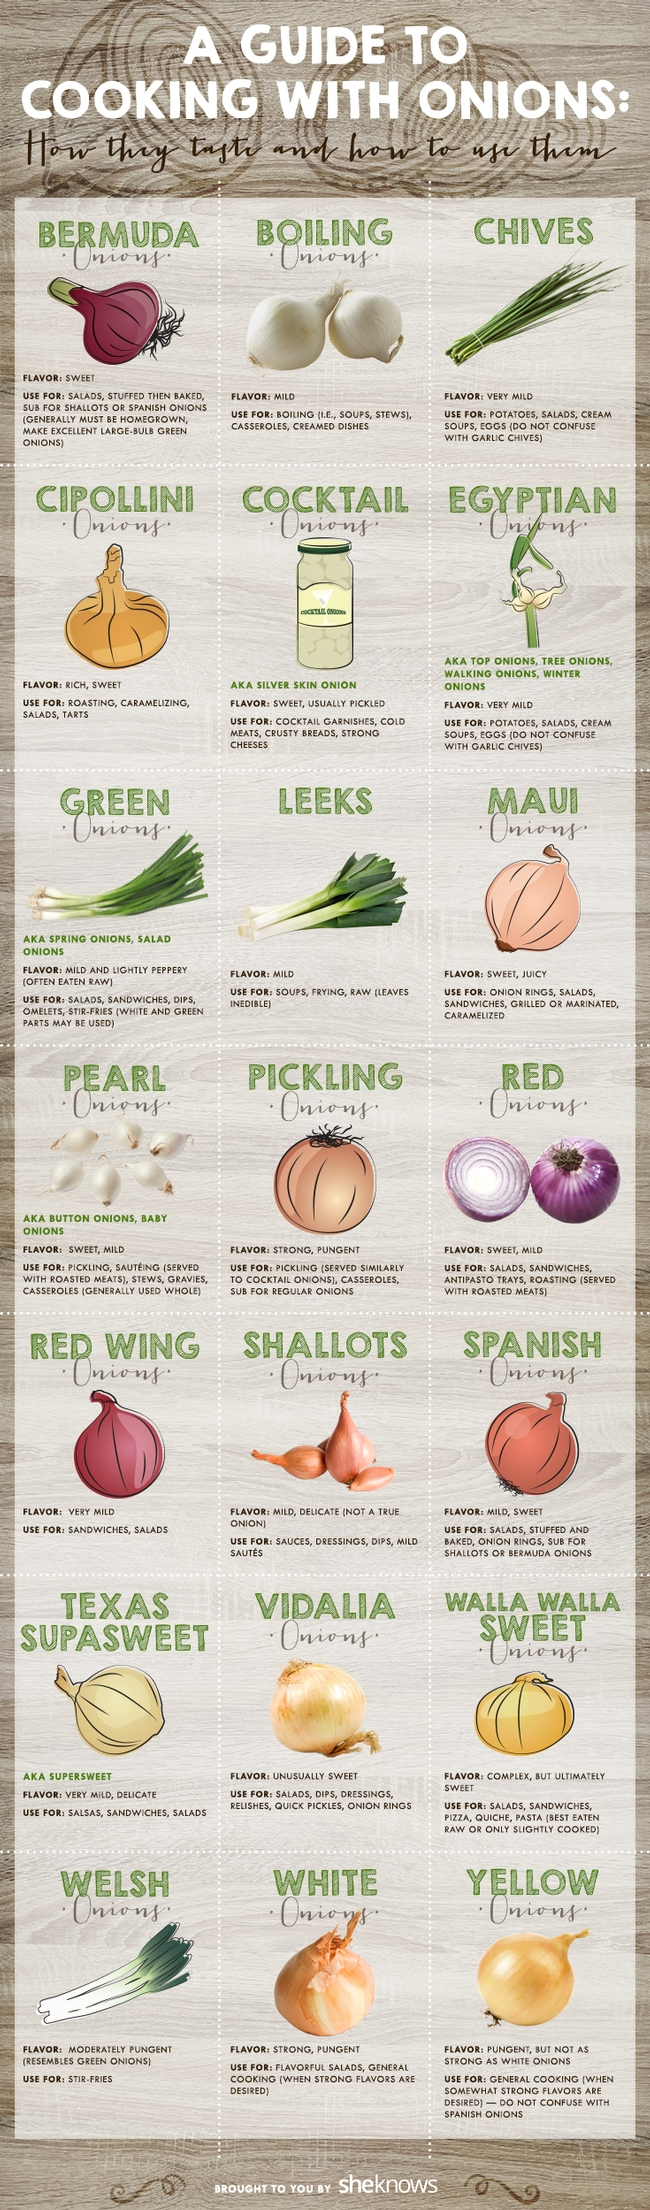 Onions vary in their intense flavor (sheknows.com)